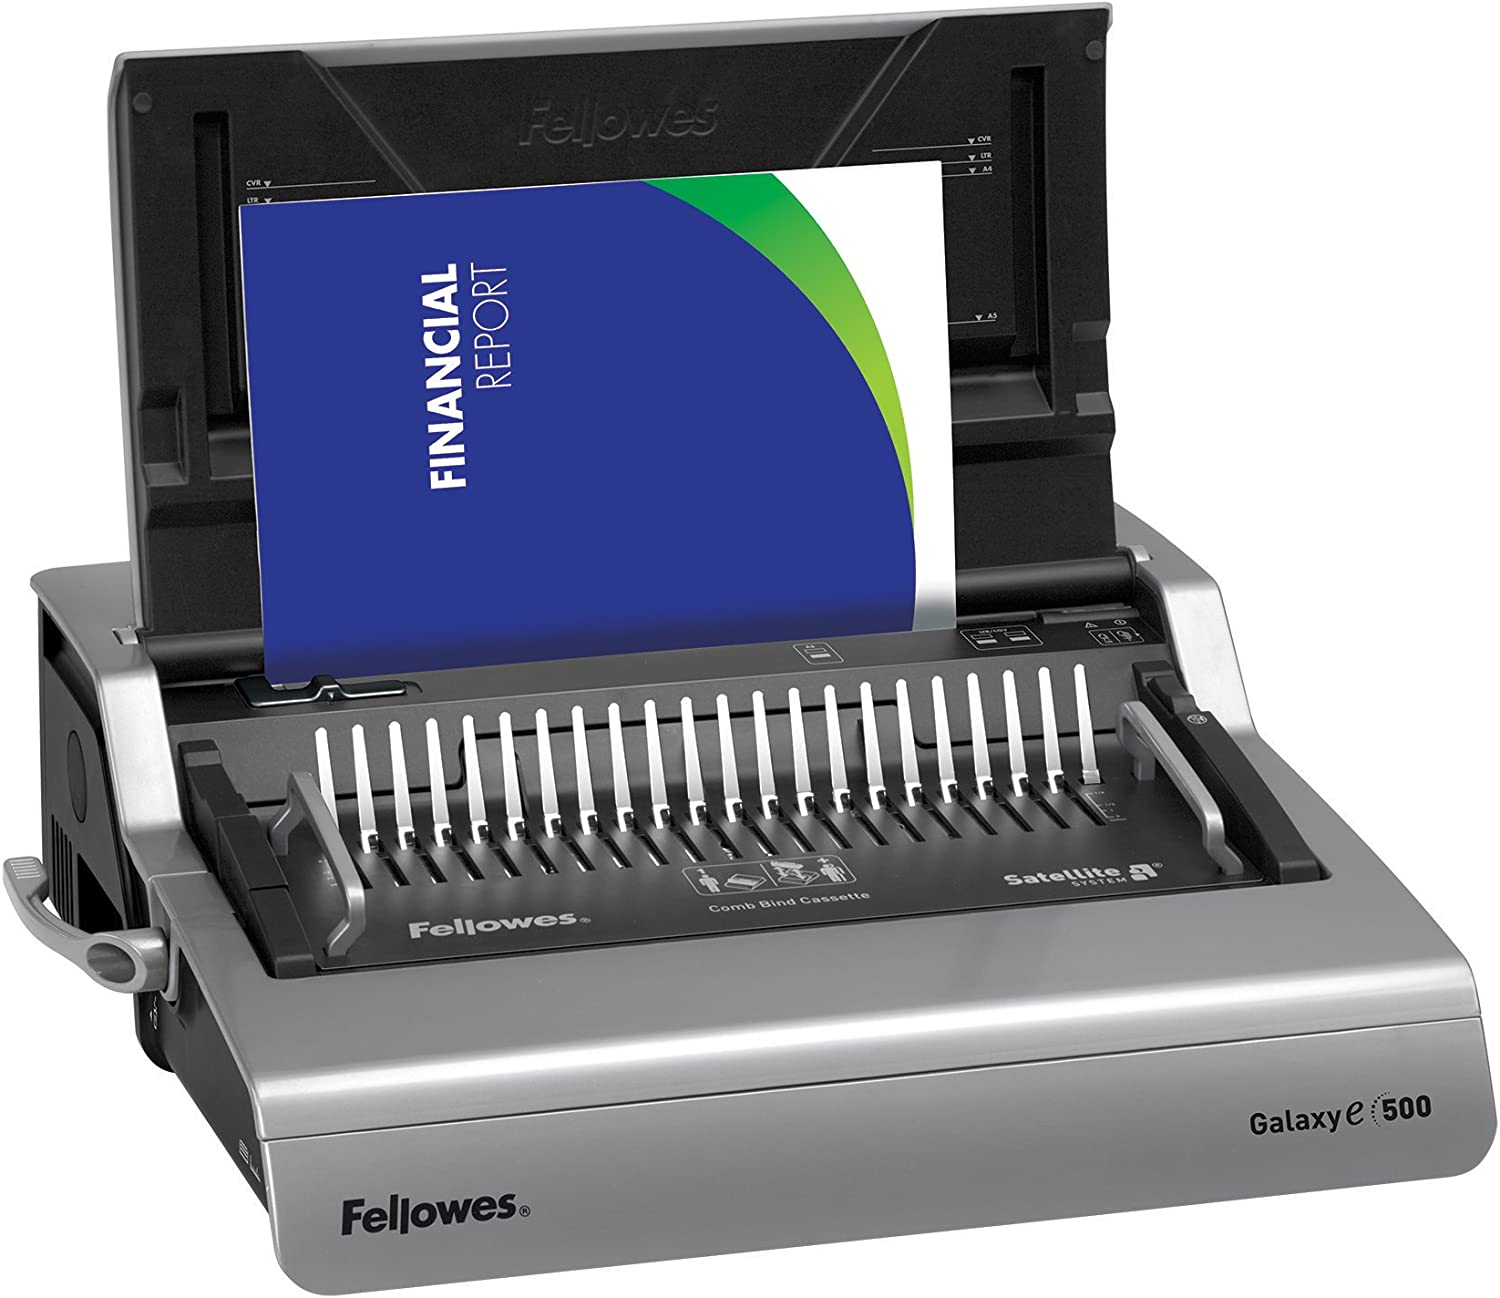 Fellowes 5218301 Galaxy 500 Electric Comb Binding System, 500 Sheets, 19 5/8x17 3/4x6 1/2, Gray : Office Products